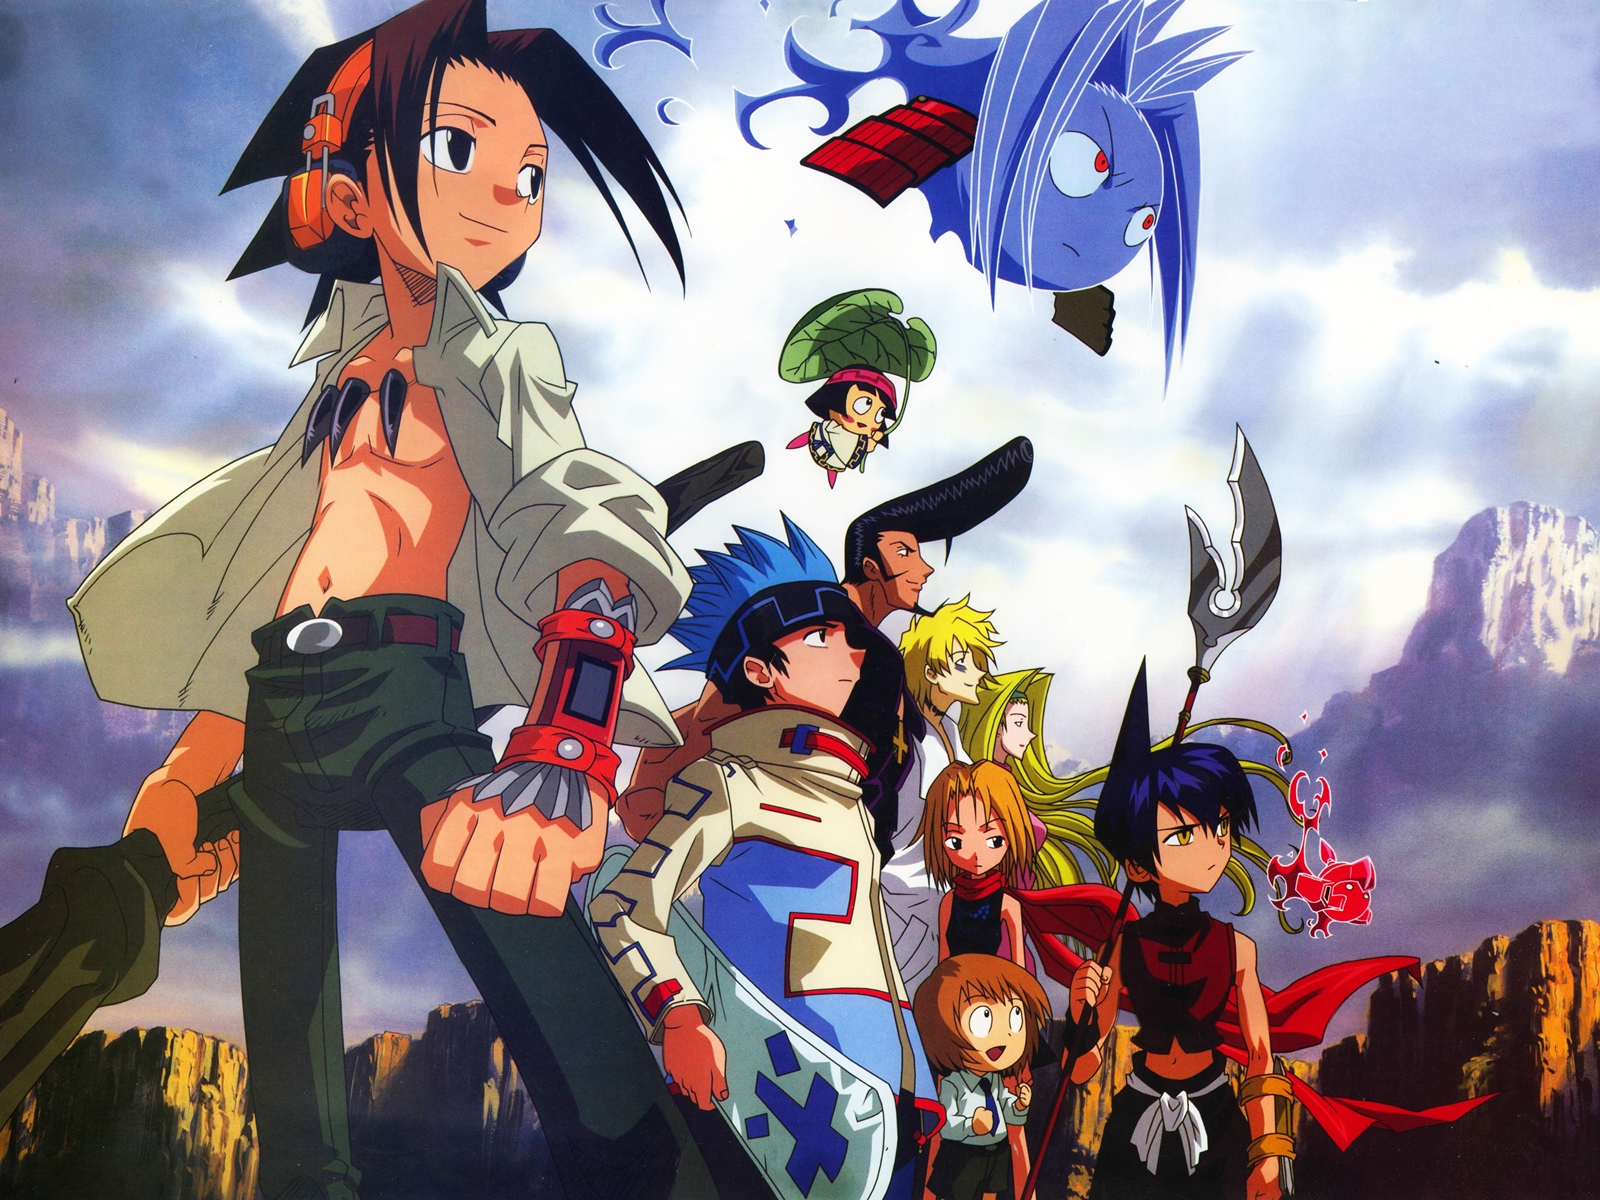 Shaman King Episode 21 Release Date, Recap, And Spoilers